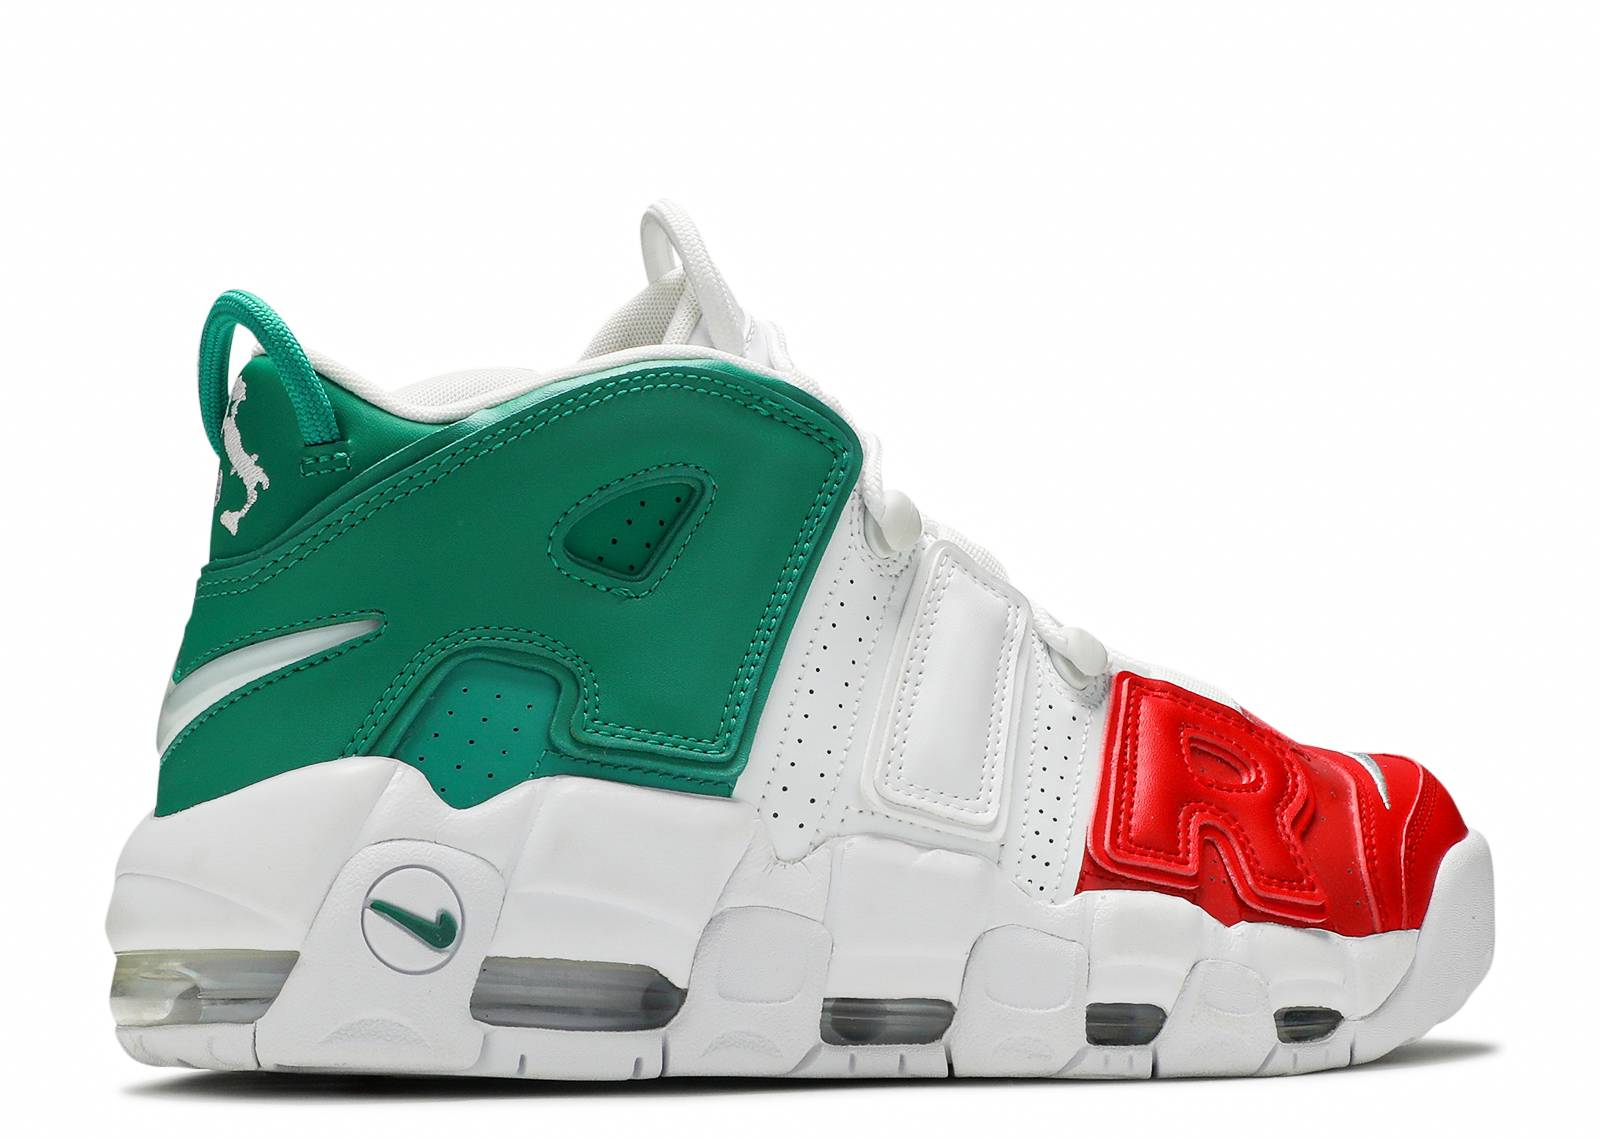 ee734bc894 Air More Uptempo '96 Italy Qs - Nike - av3811 600 - university  red/white-lucid green | Flight Club